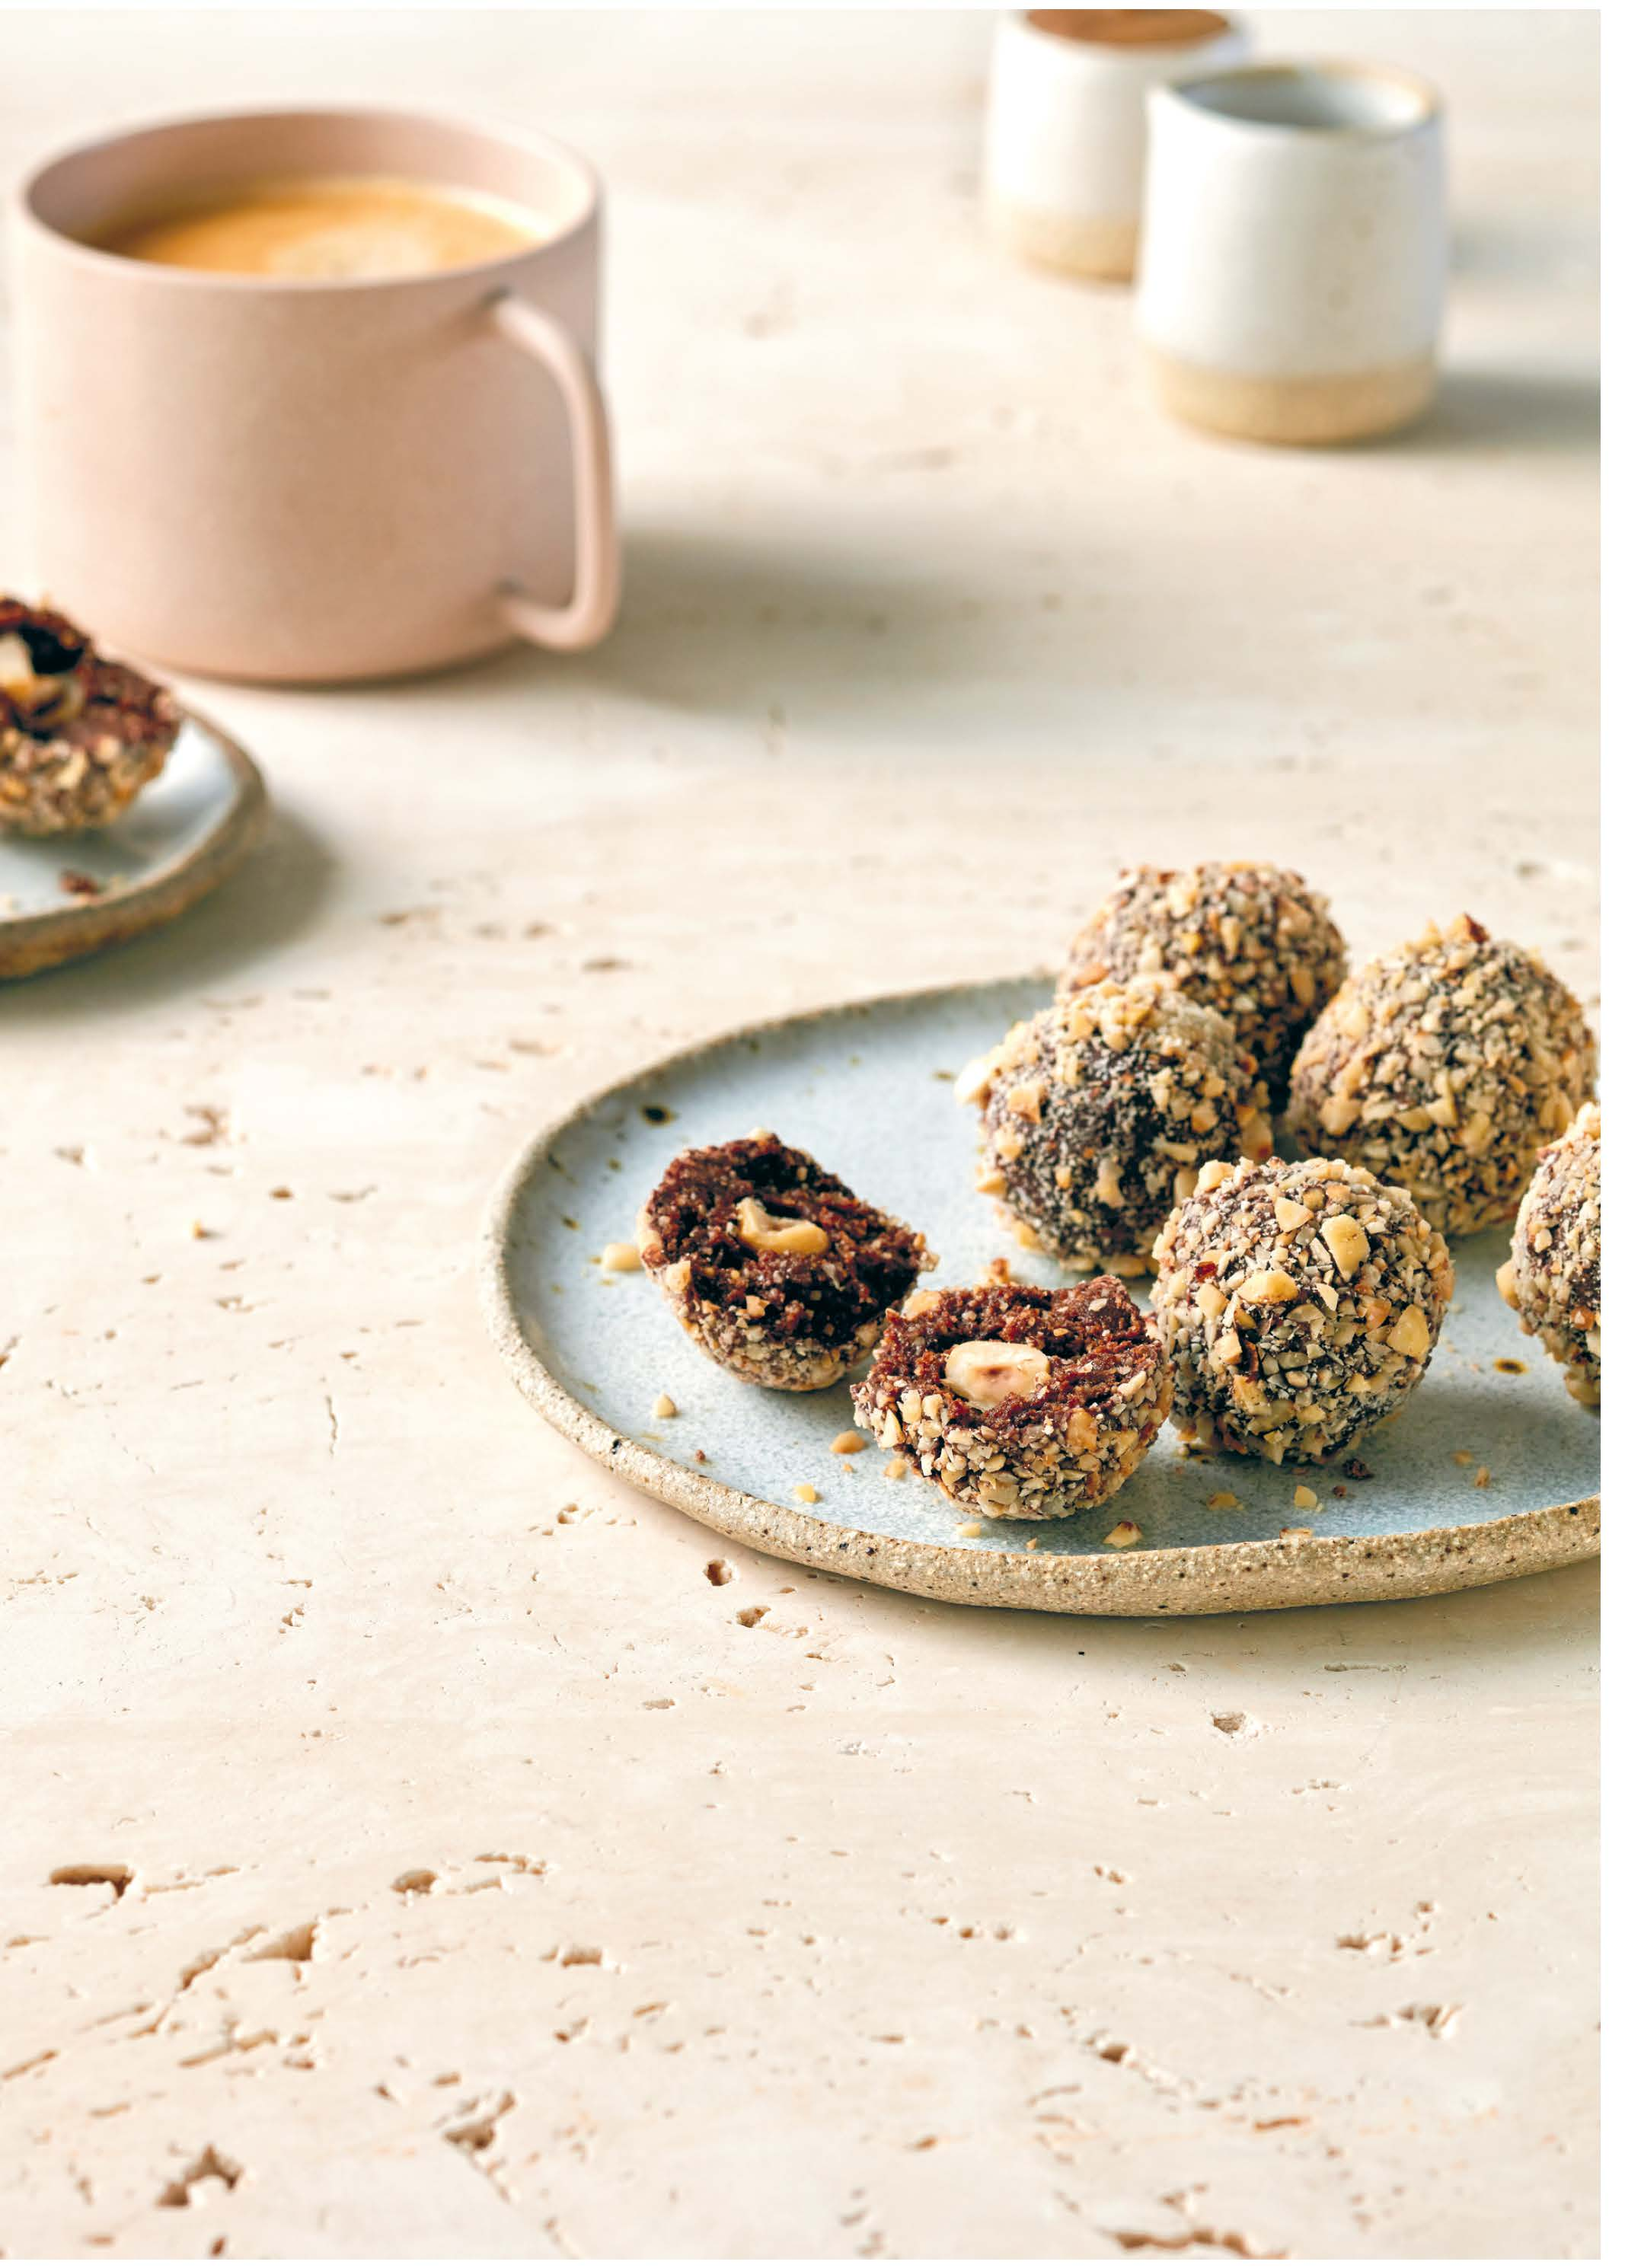 FAUX-RERRO ROCHER HAZELNUT BLISS BALLS